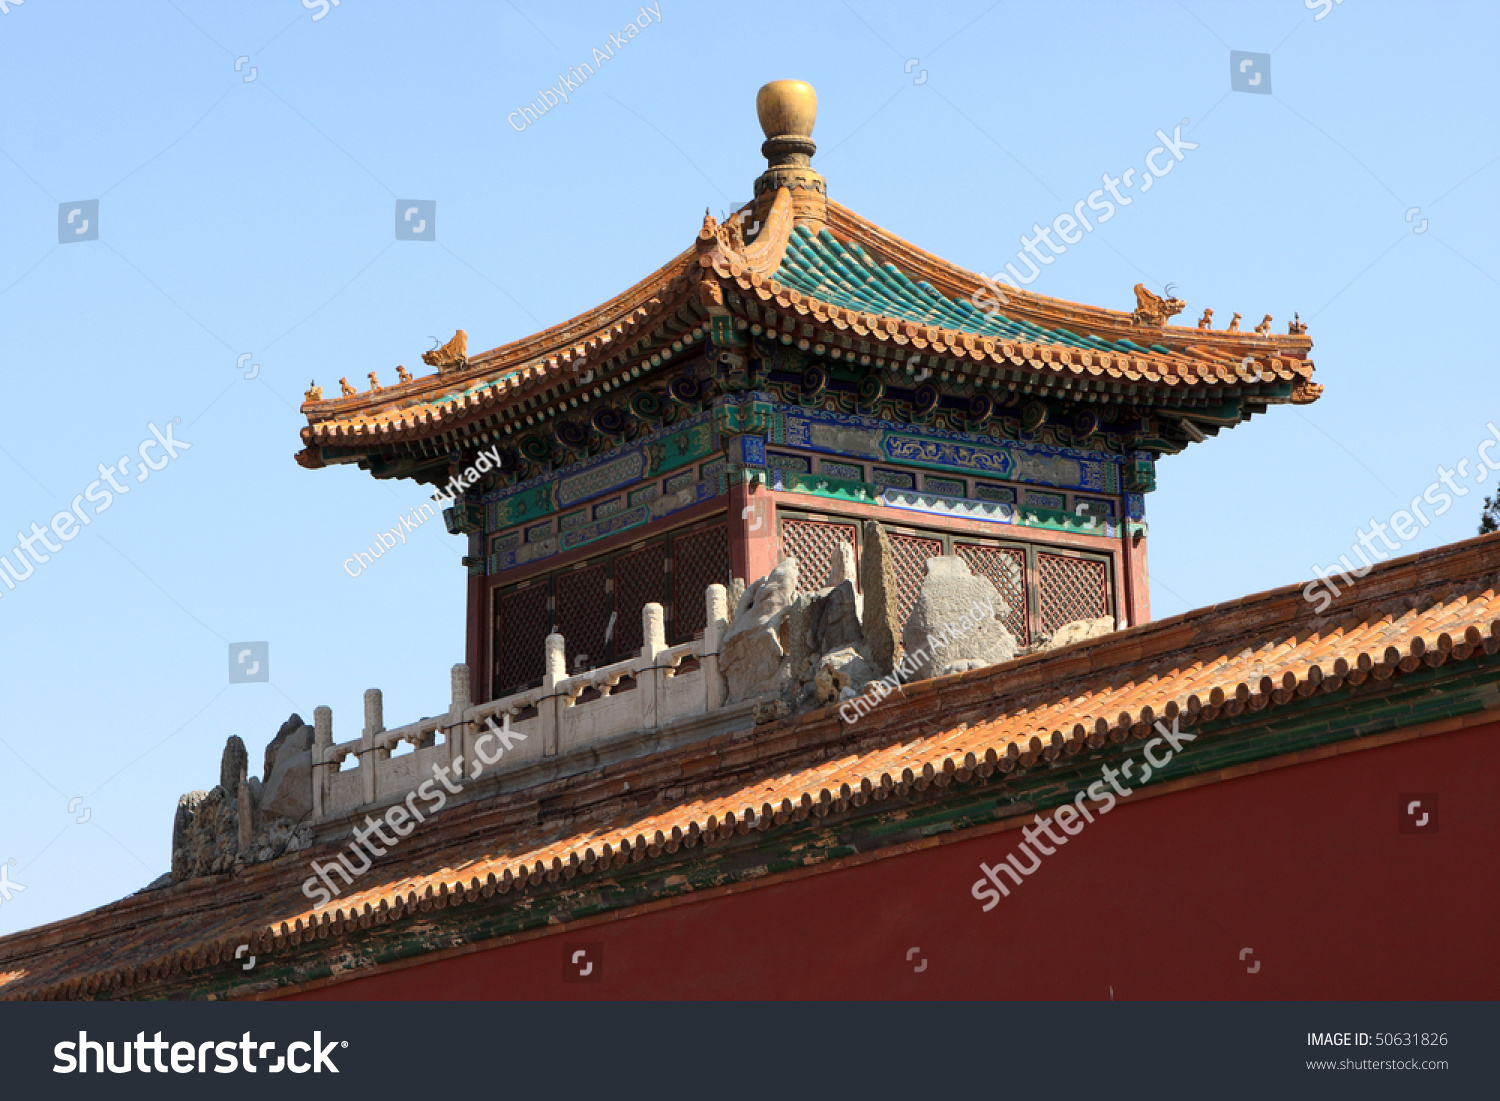 Tower Of Temple In Forbidden City Was The Chinese Imperial ...  |Imperial Palace Forbidden City Beijing China